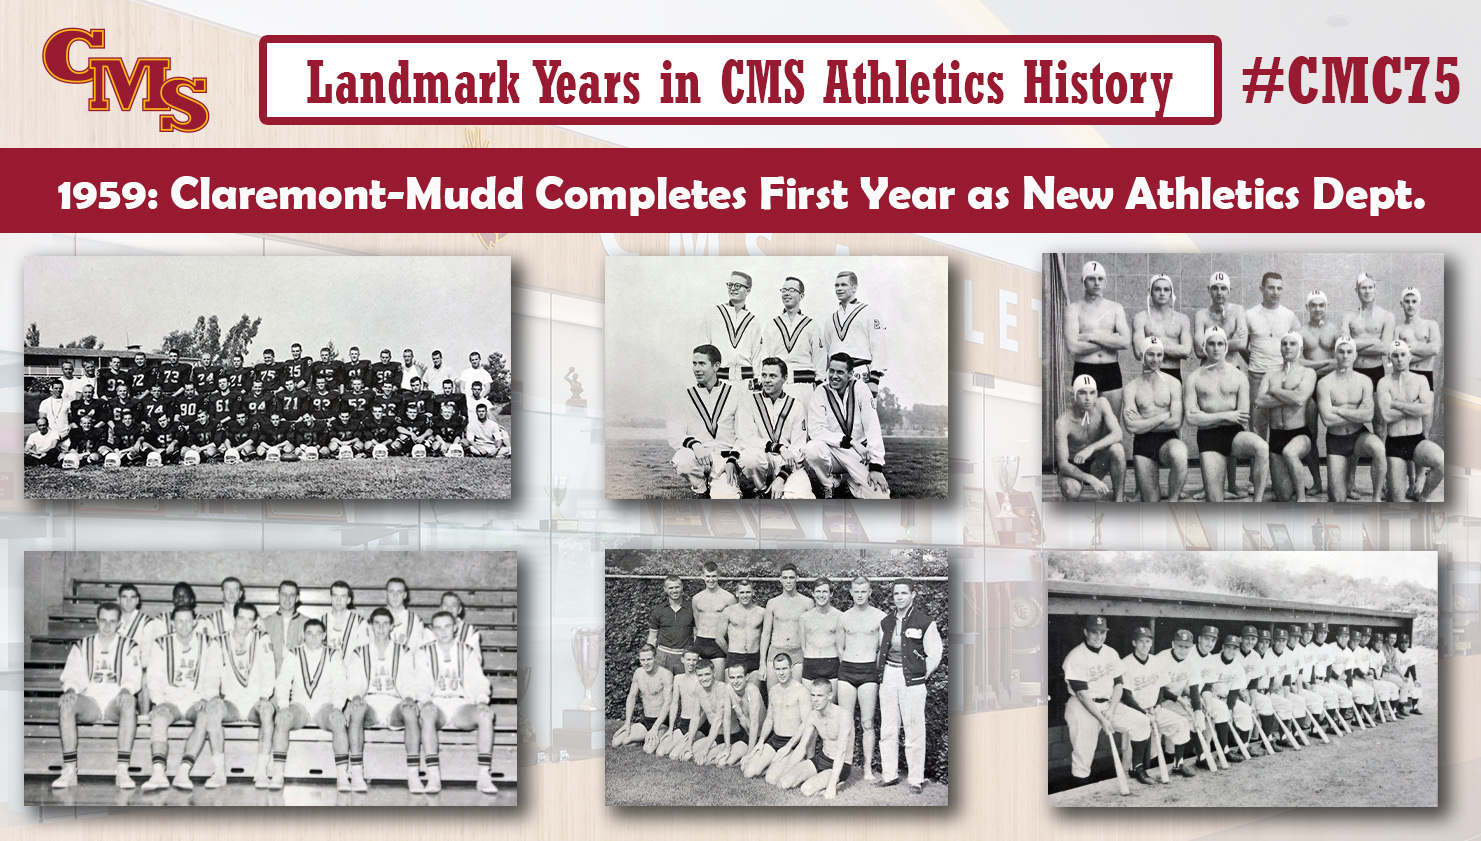 Team shots from six teams from Claremont-Mudd's debut season (top row: football, cross country, water polo, bottom row: basketball, swimming and diving, baseball). Words over the photo read: Landmark Years in CMS Athletics History: 1959: Claremont-Mudd Completes First Year in New Athletics Department